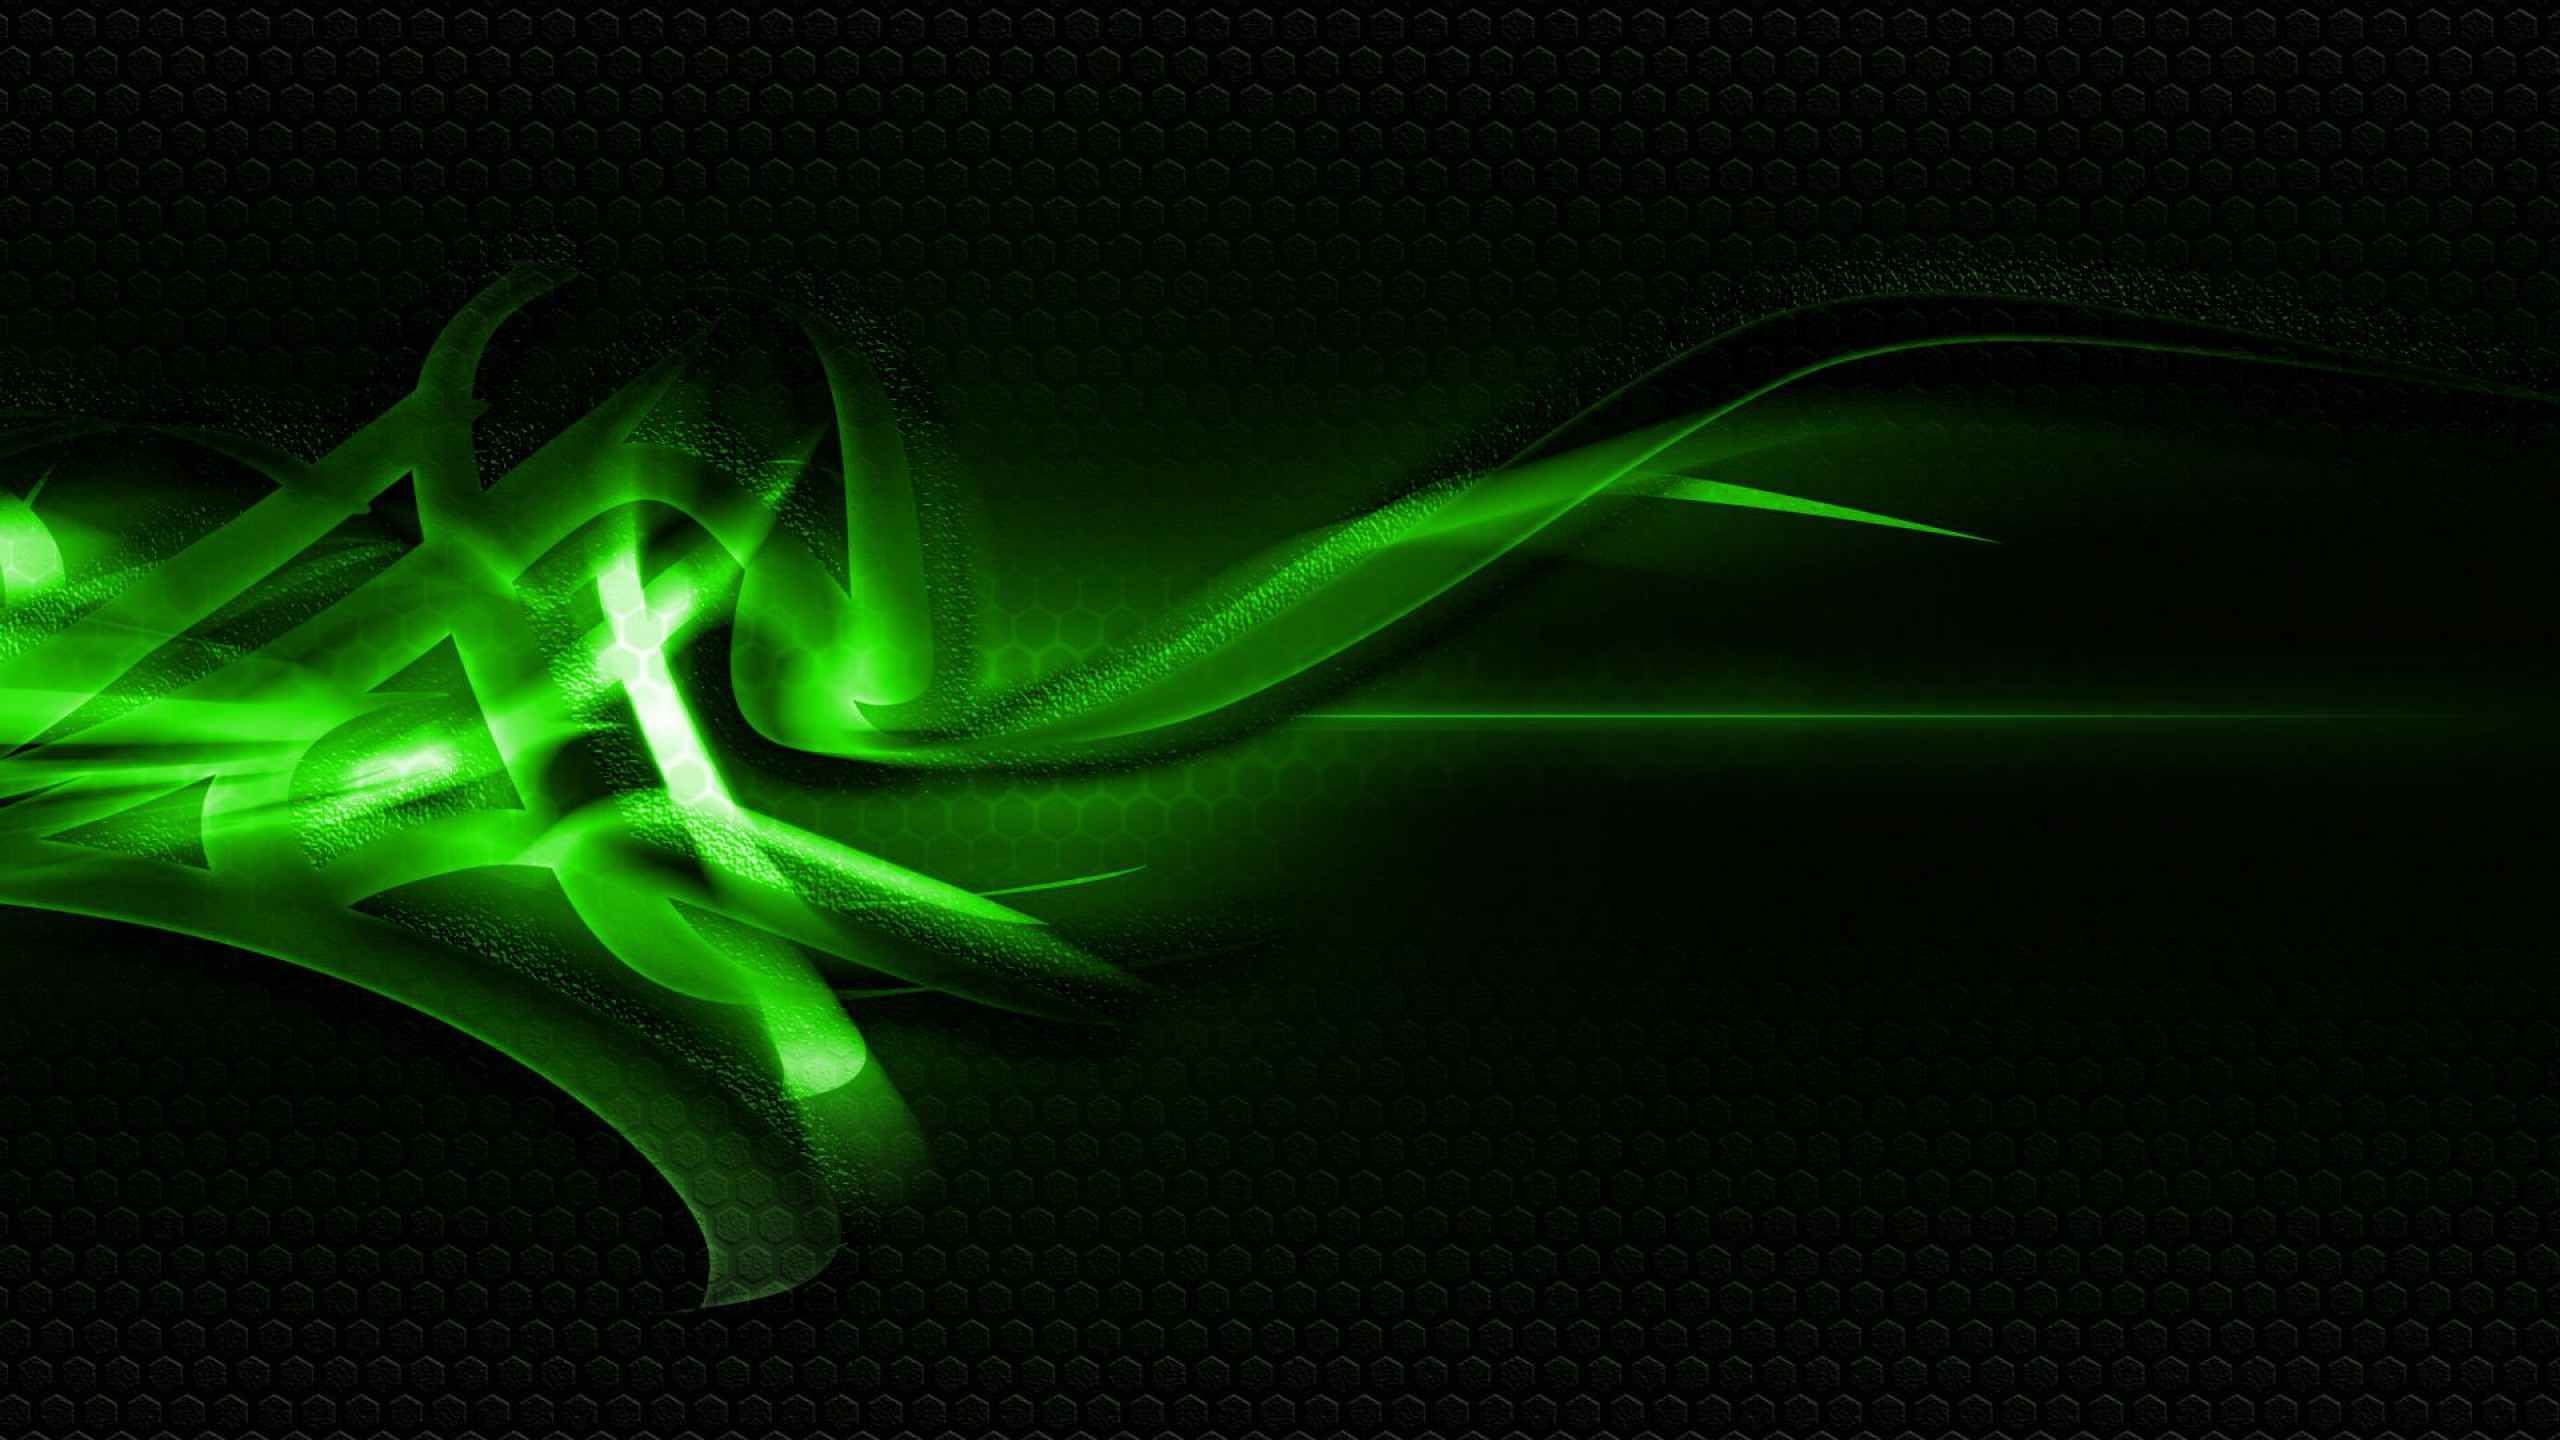 Green And Black Abstract Wallpaper 2560x1440